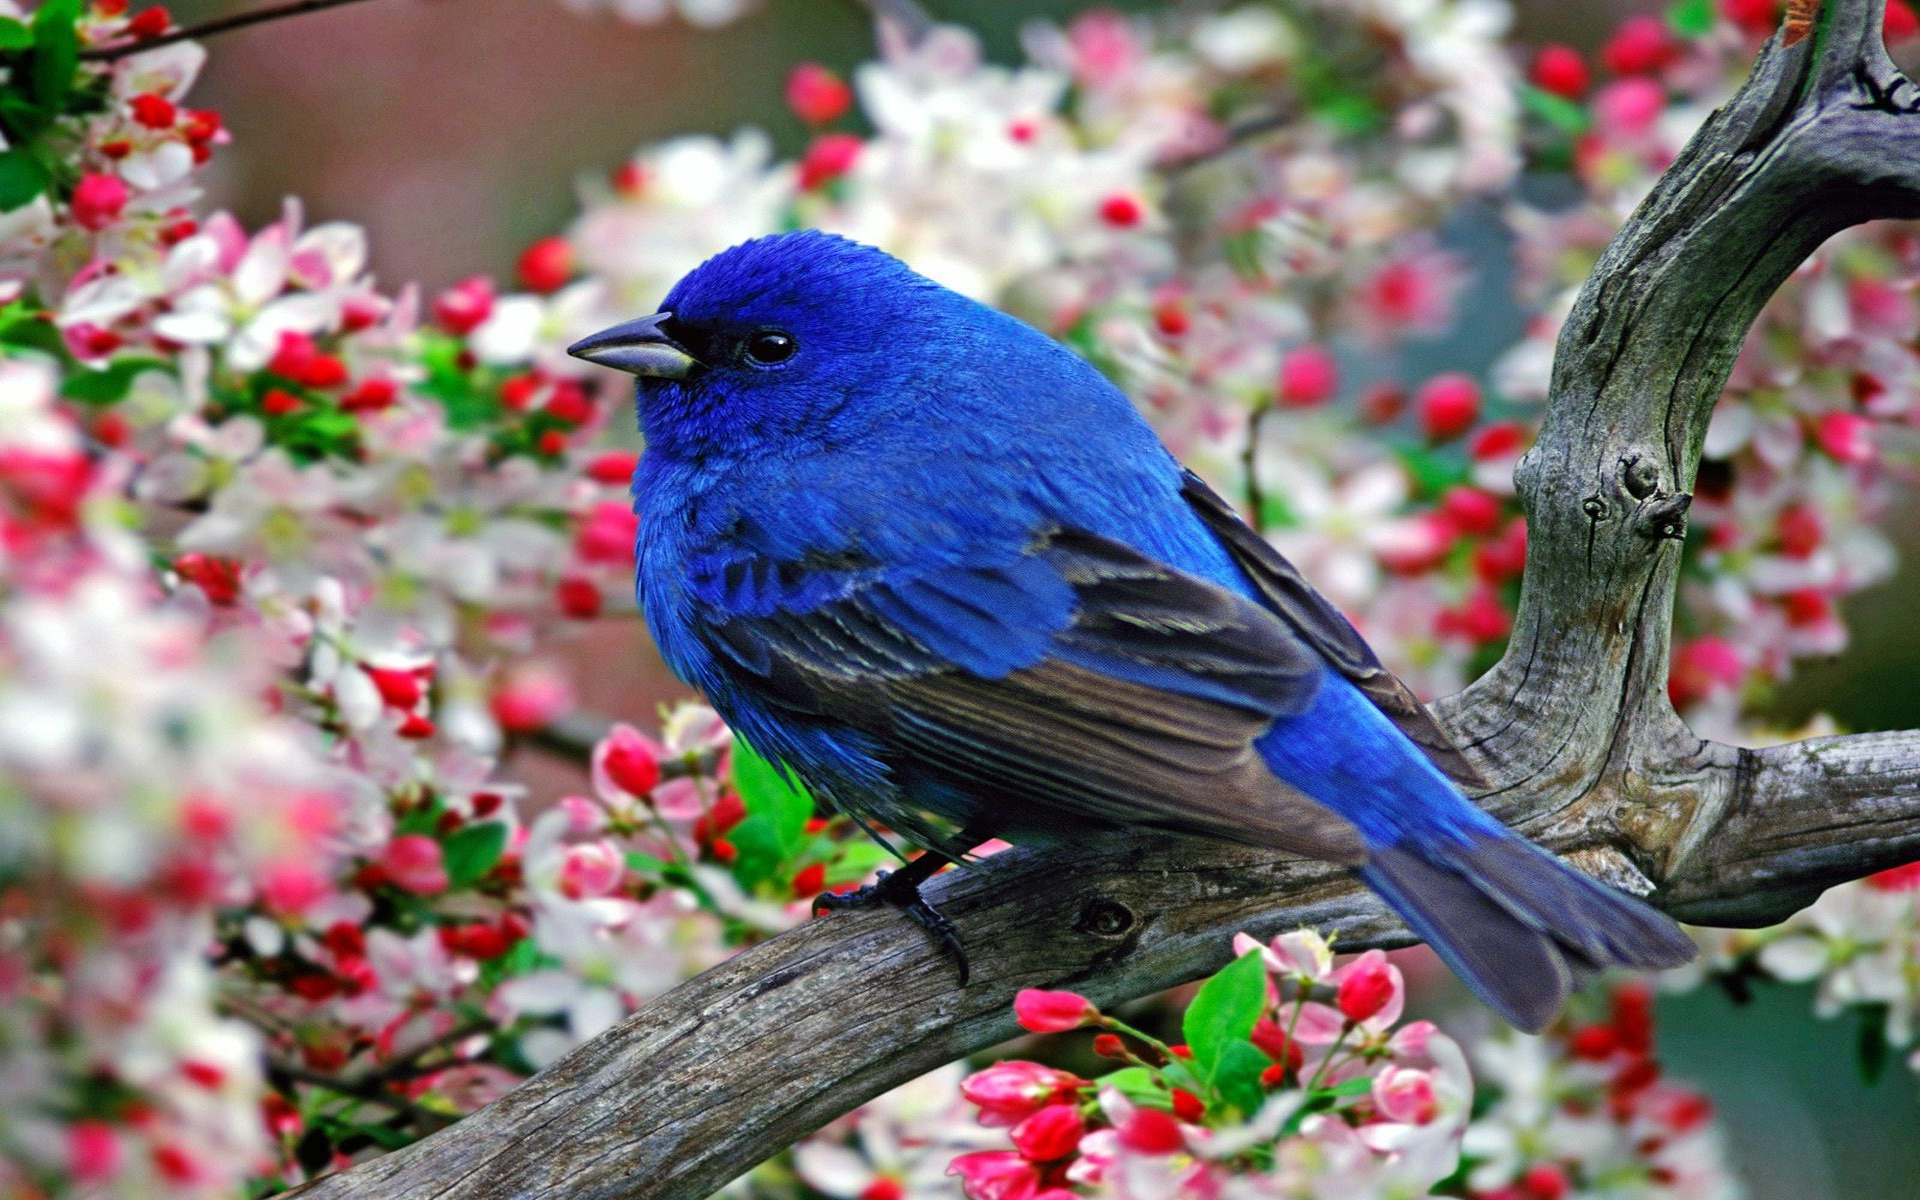 Blue Bird Flying Hd Wallpaper For Desktop Pc Mobile 1920x1200